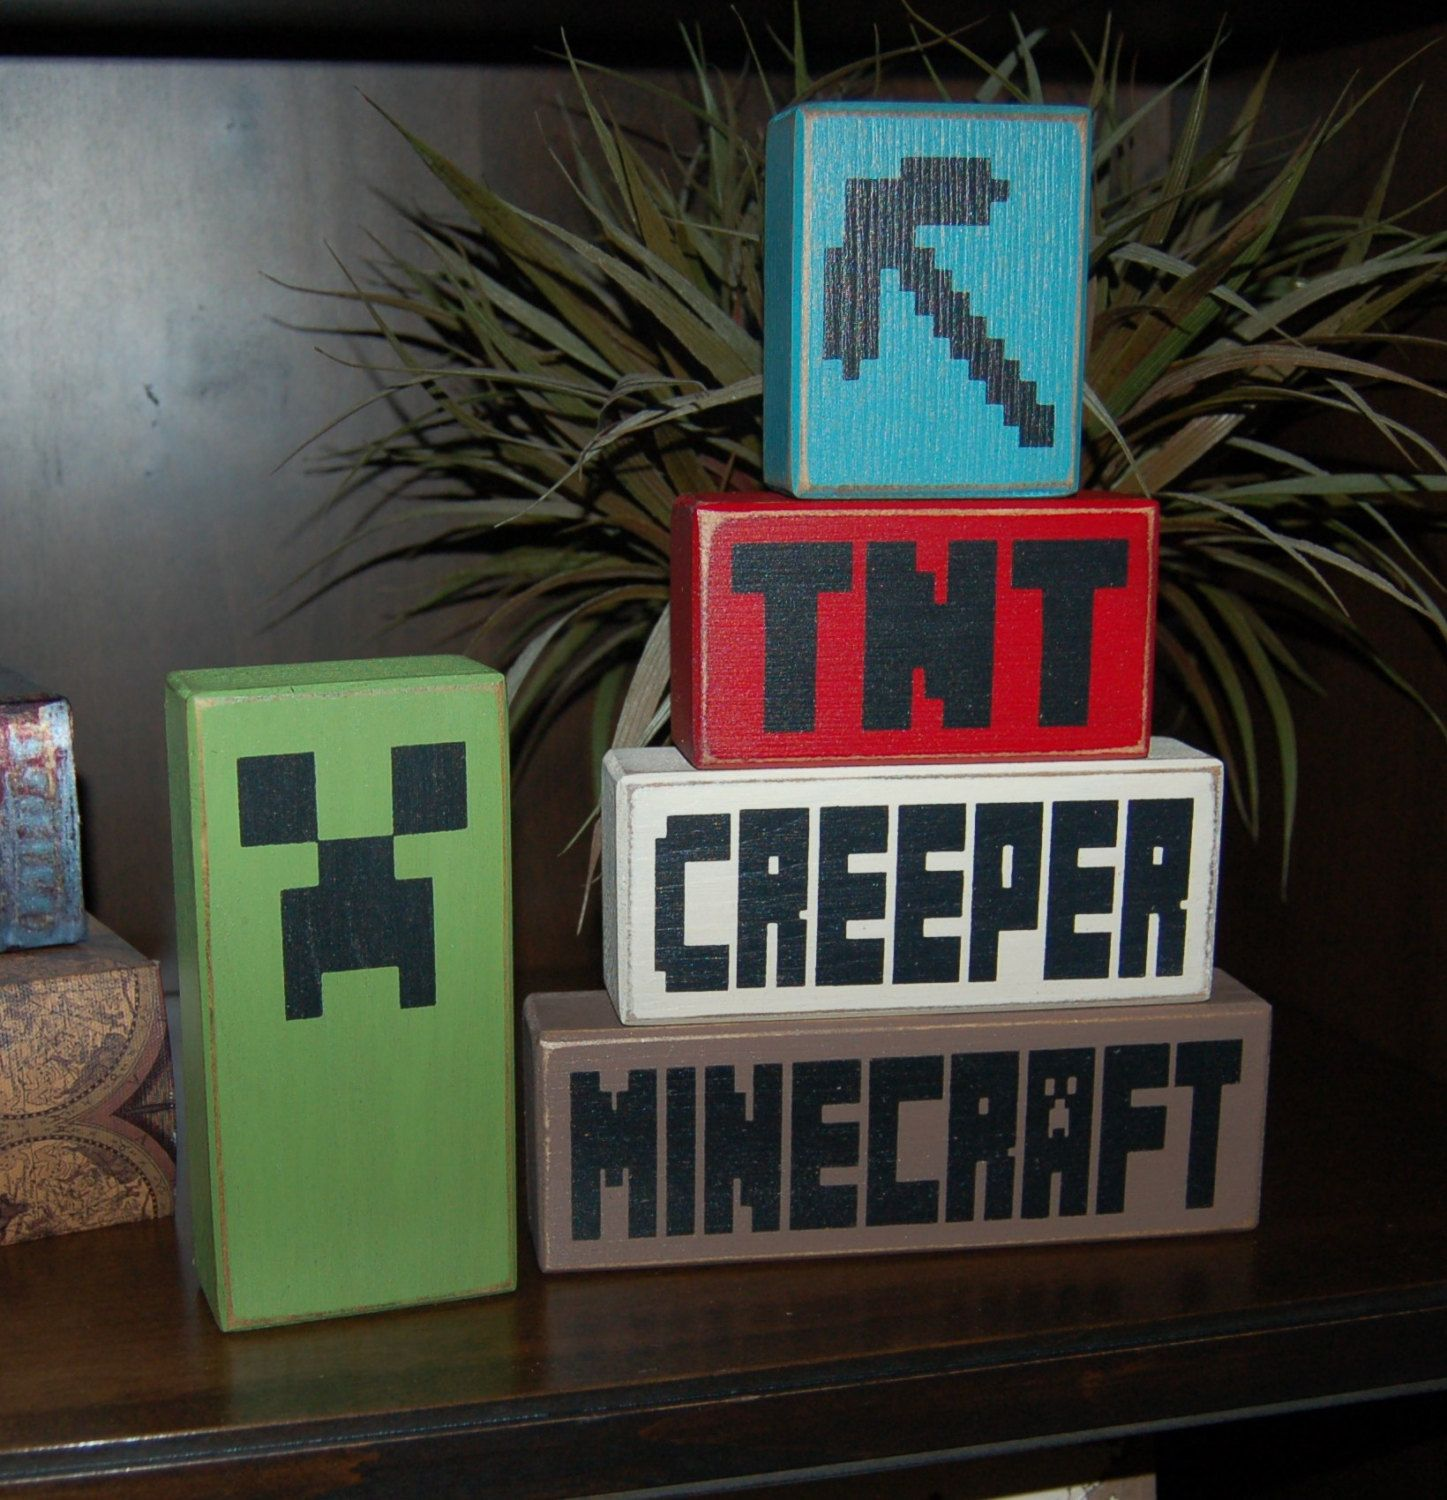 MINECRAFT Creeper TNT Pick Axe Primitive Wooden Sign Stacking Blocks Children Minecraft Birthday Decor Centerpiece Bedroom Nursery Decor by SimpleBlockSayings on Etsy https://www.etsy.com/listing/220529494/minecraft-creeper-tnt-pick-axe-primitive